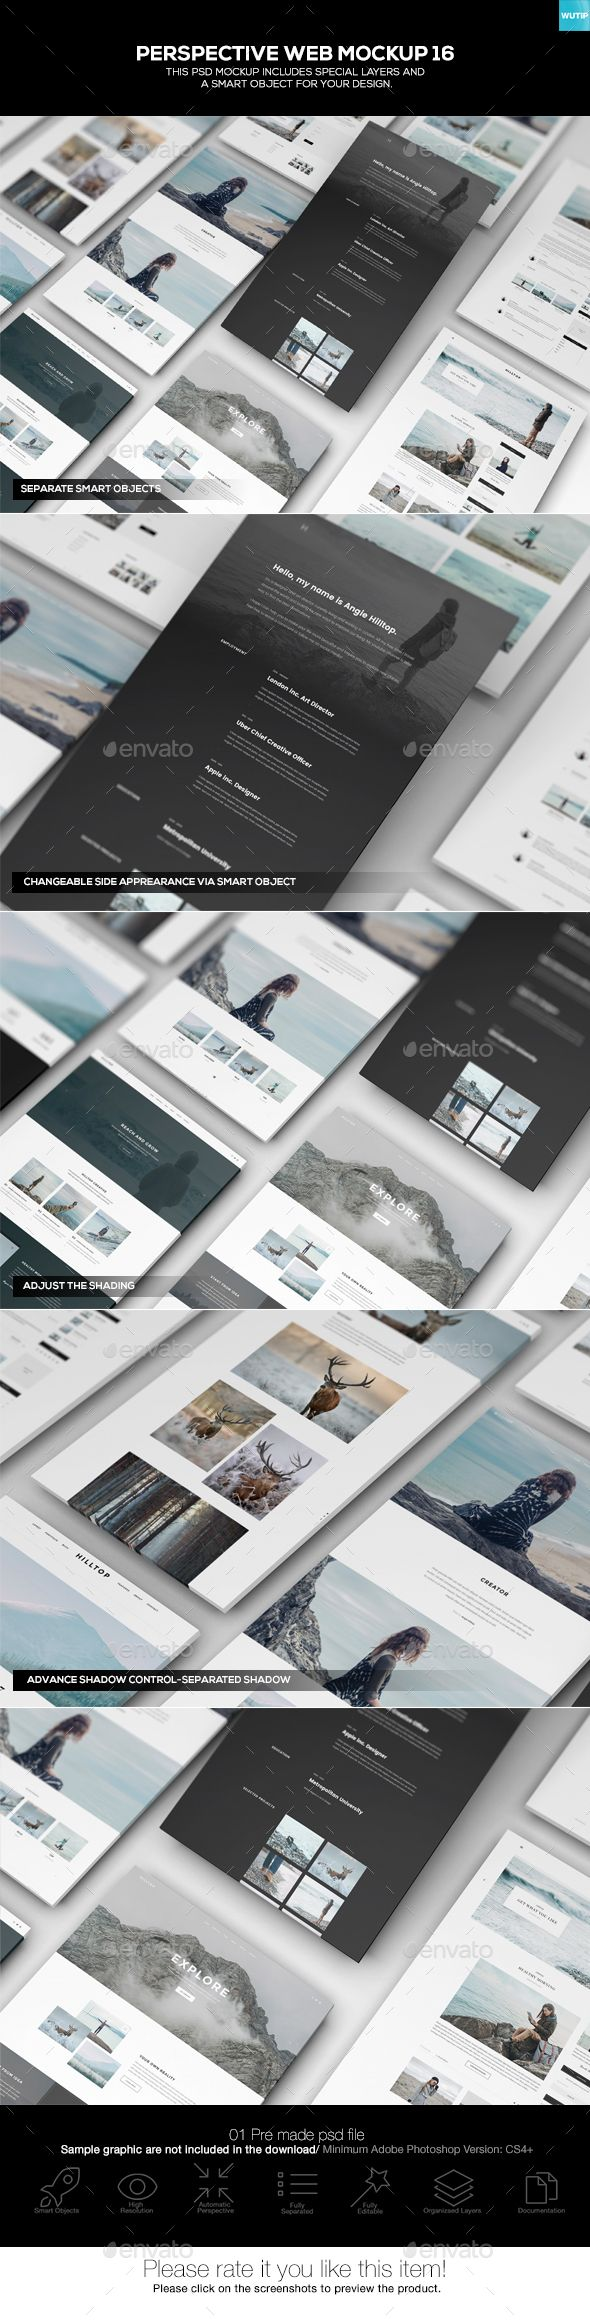 Perspective Web Mockup 16 — Photoshop PSD #monitor #idevices • Available here → https://graphicriver.net/item/perspective-web-mockup-16/19680539?ref=pxcr